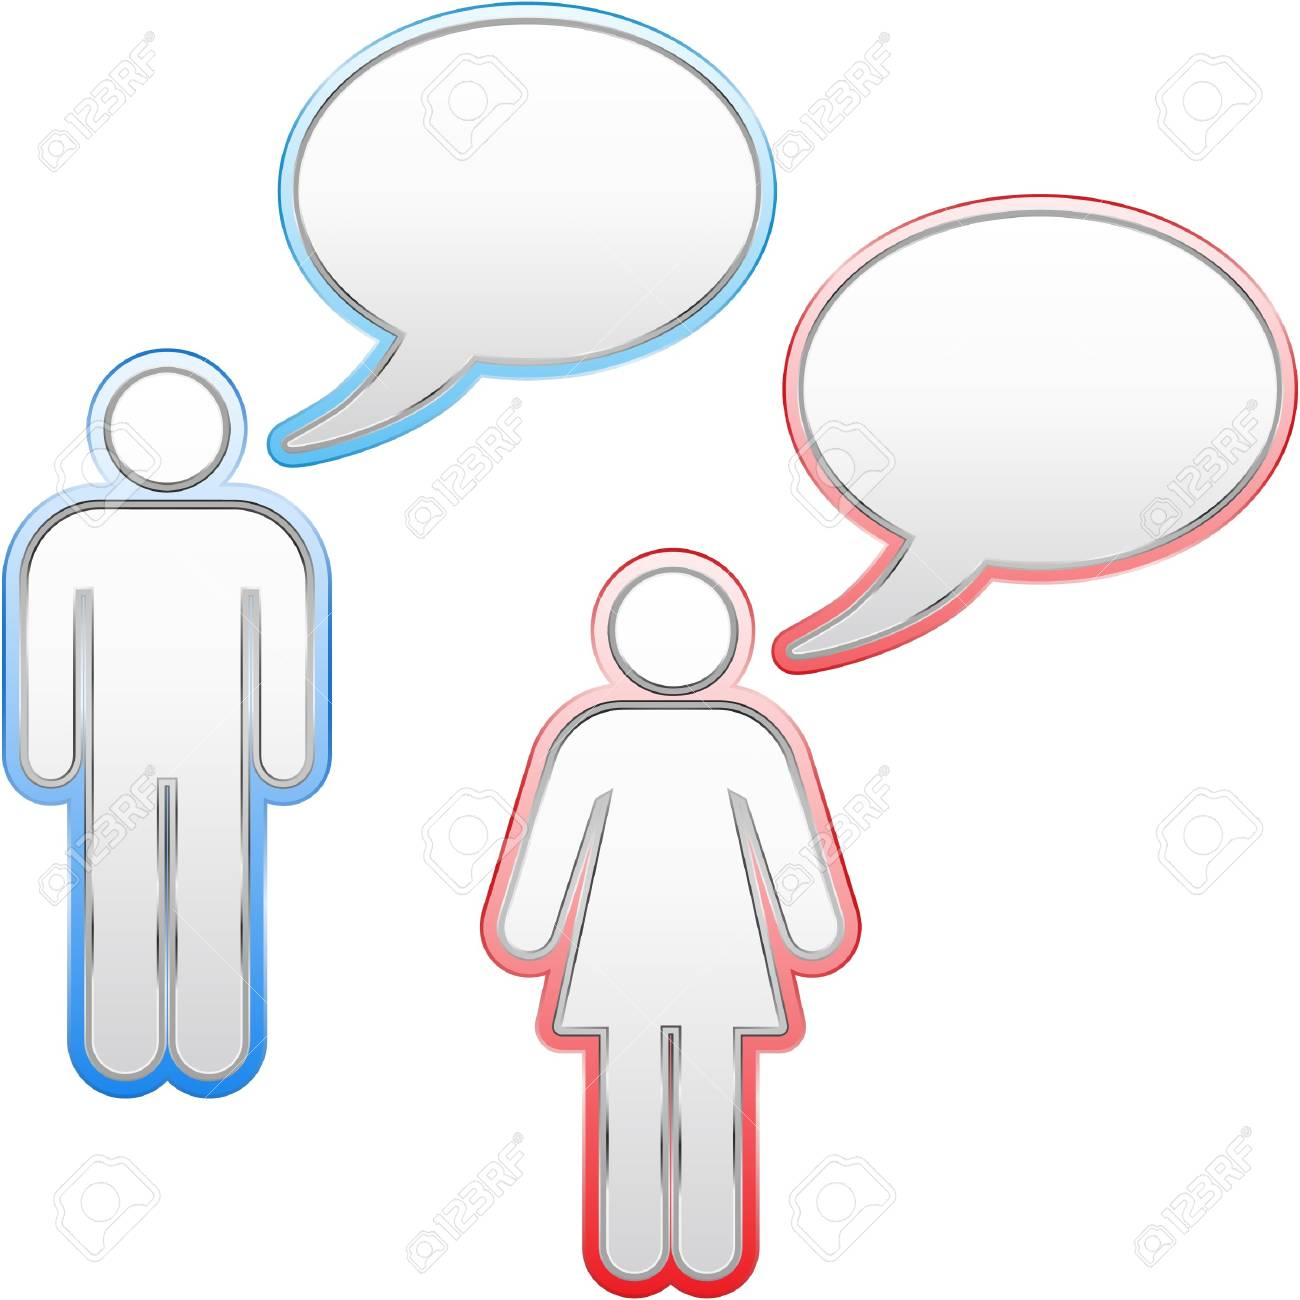 Speech bubble. Stock Photo - 8238171